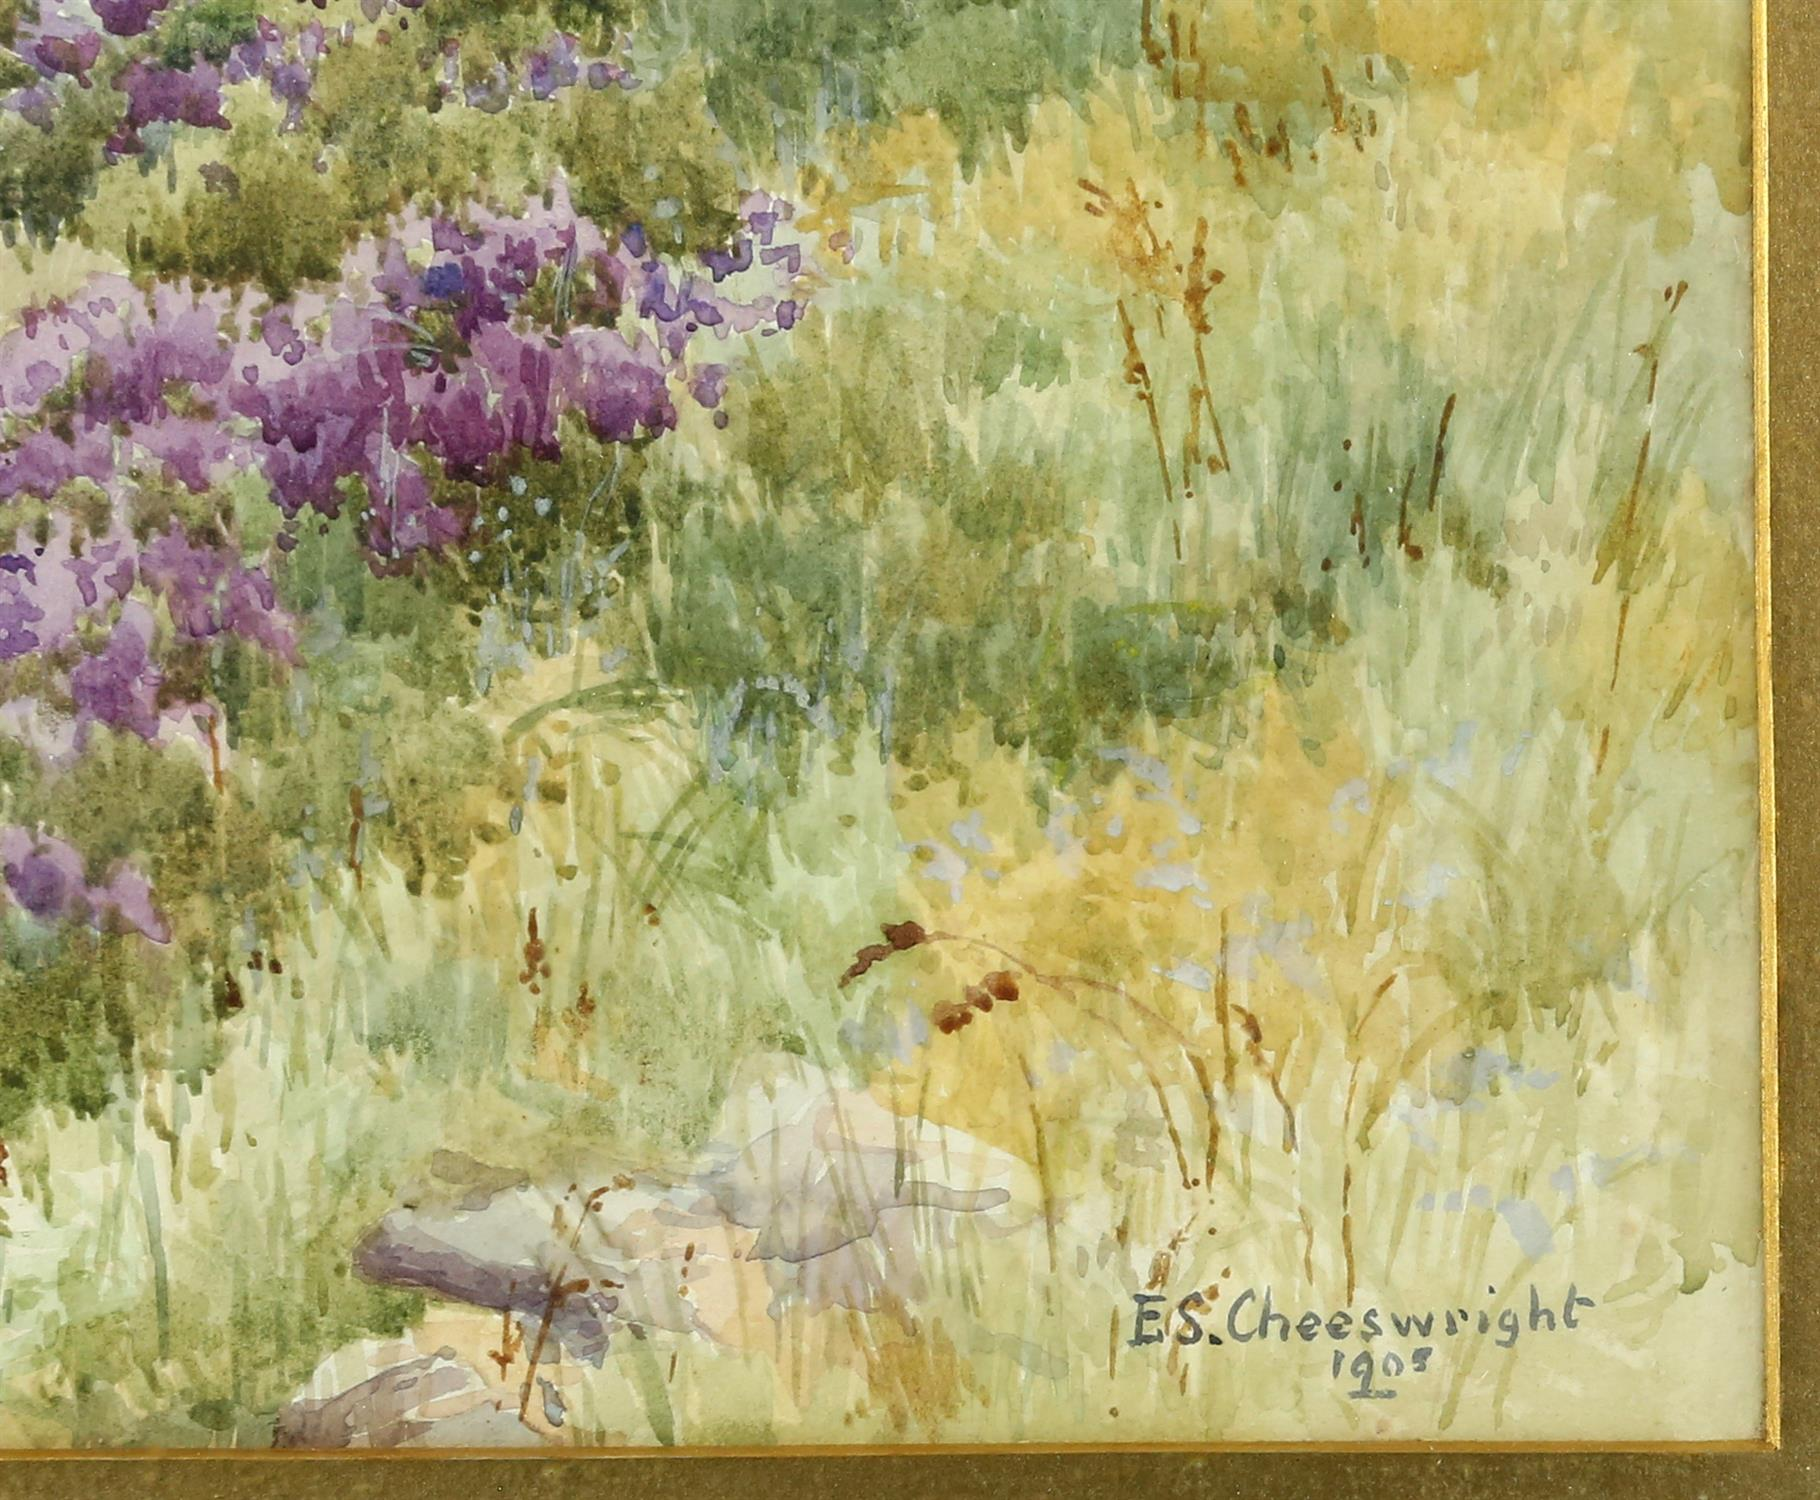 """Ethel Sophia Cheesewright (British, 1874-1977) """"between the heather and the Northern Sea"""", - Image 3 of 5"""